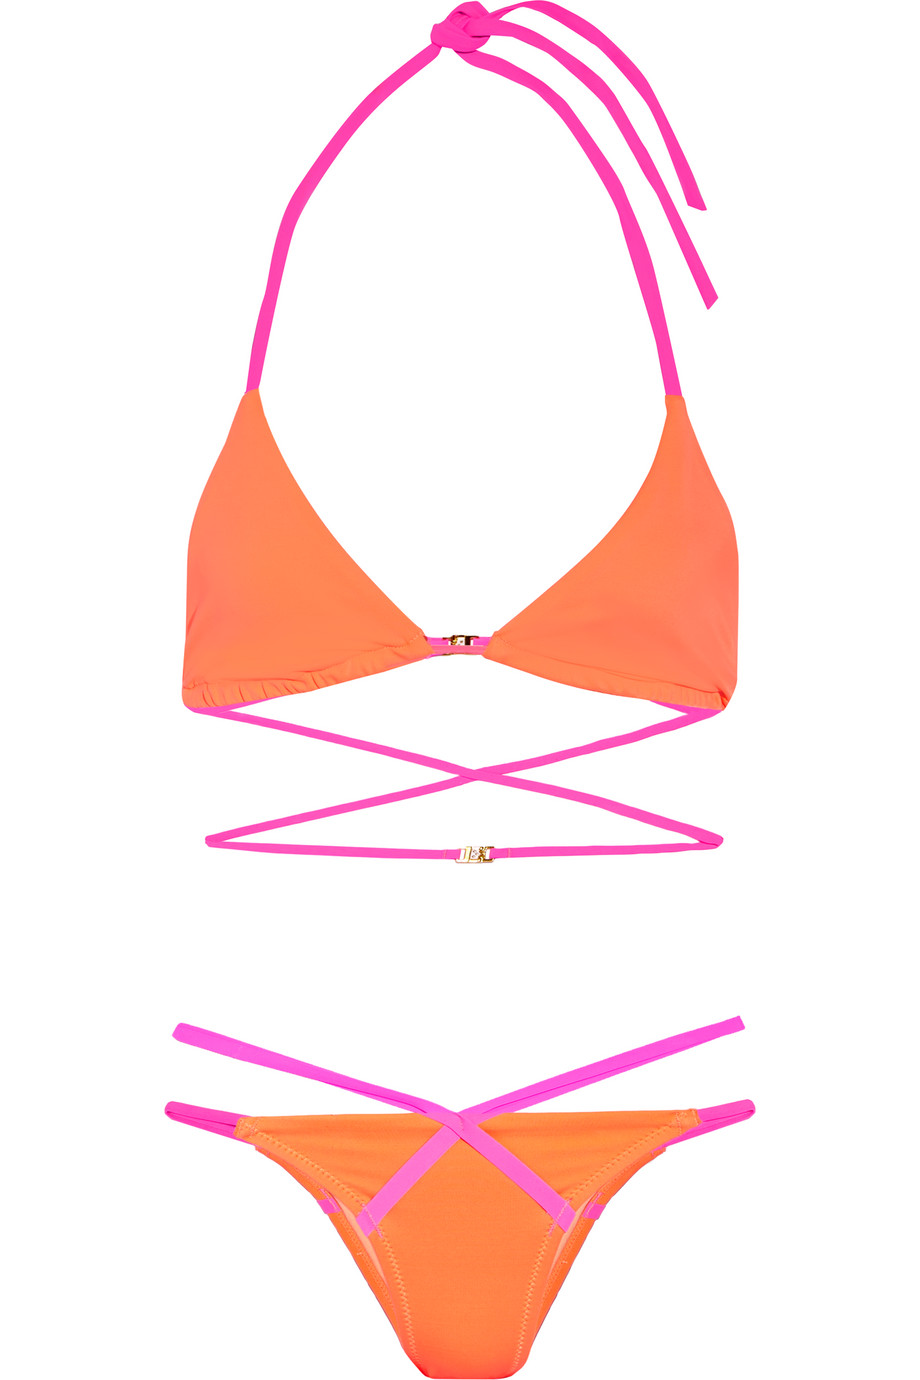 Eleena Two-Tone Triangle Bikini, L'agent by Agent Provocateur, Coral/Fuchsia, Women's